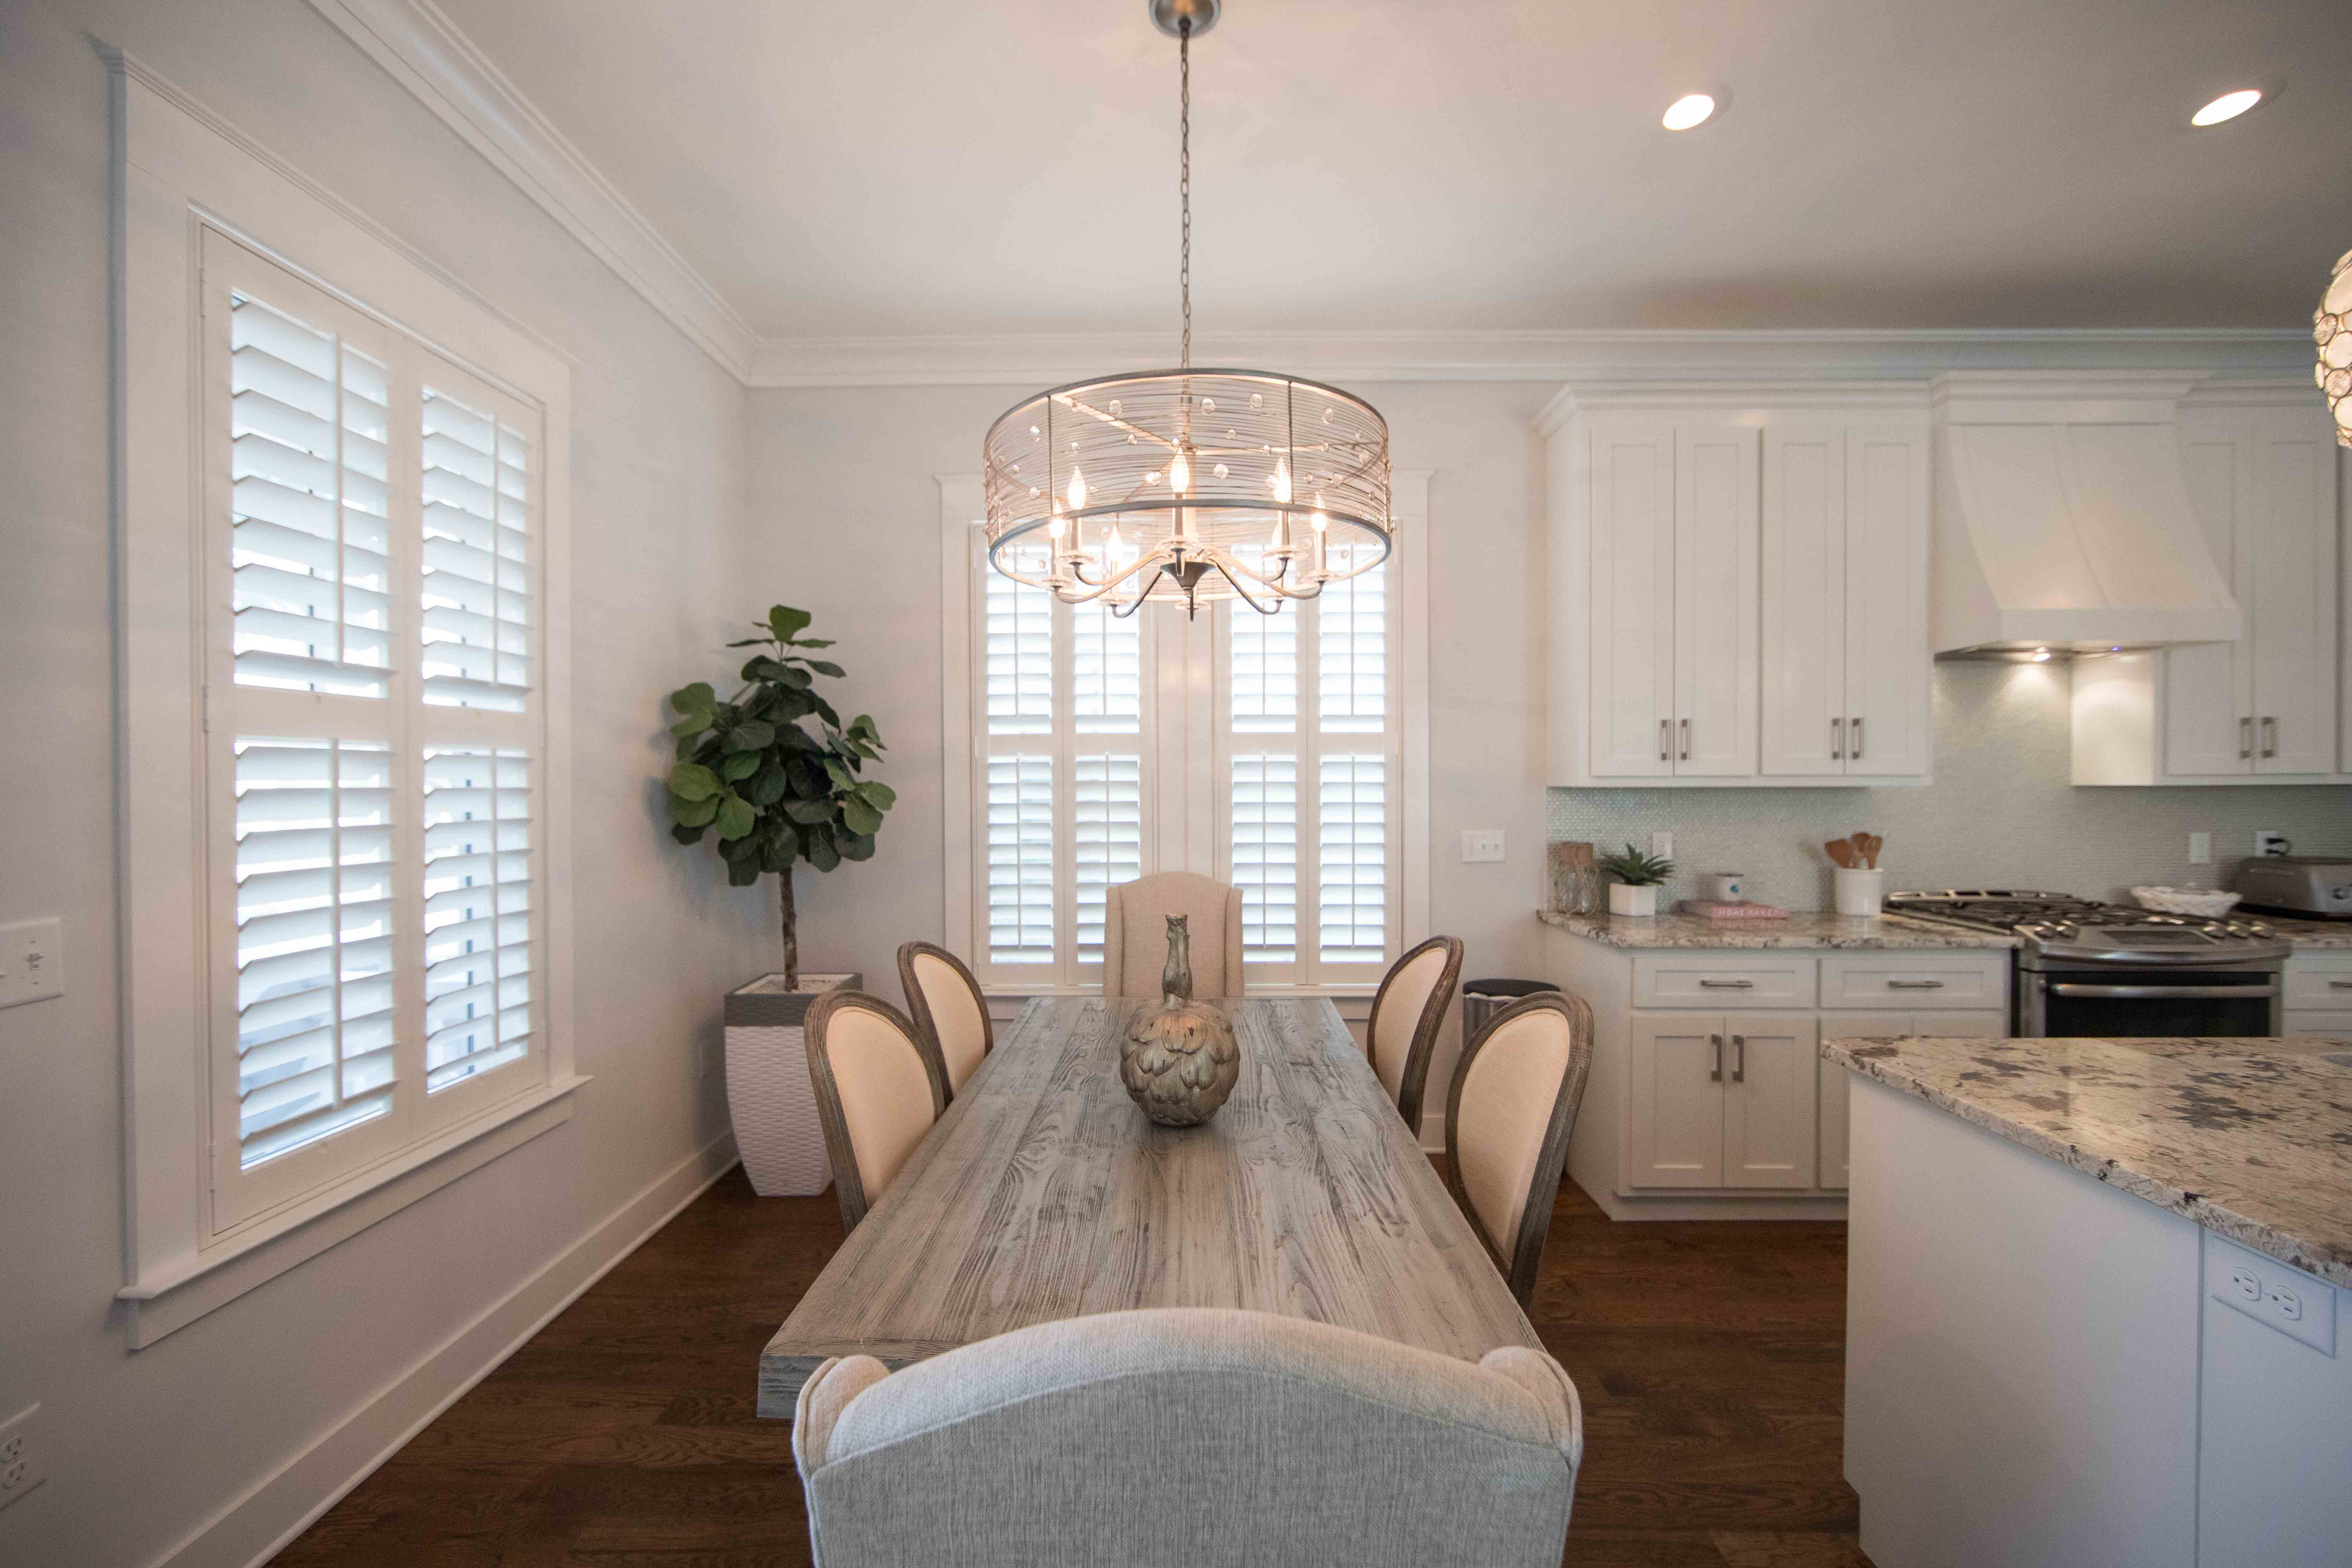 Great family table for making great conversation over a wonderful meal with those you love.